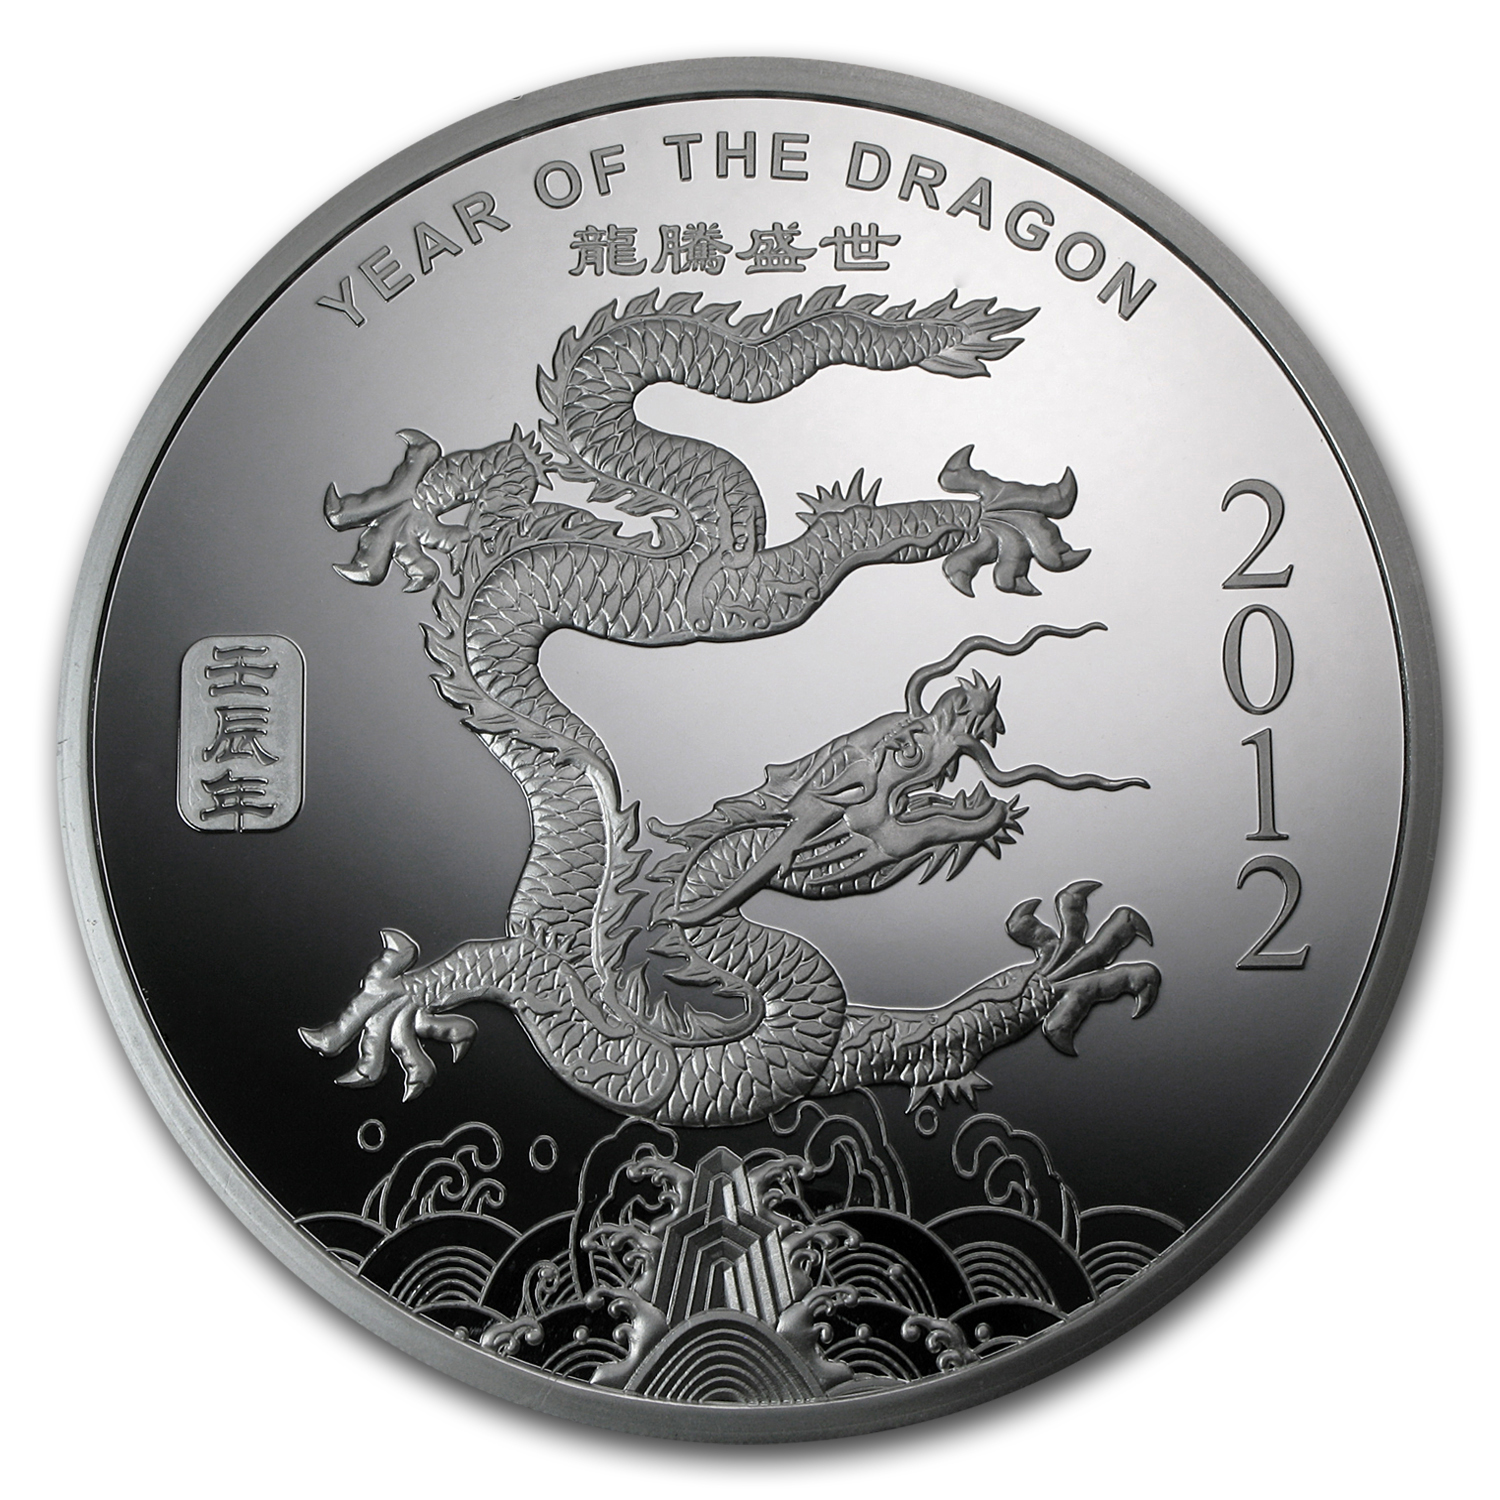 1 oz Silver Round - APMEX (2012 Year of the Dragon)